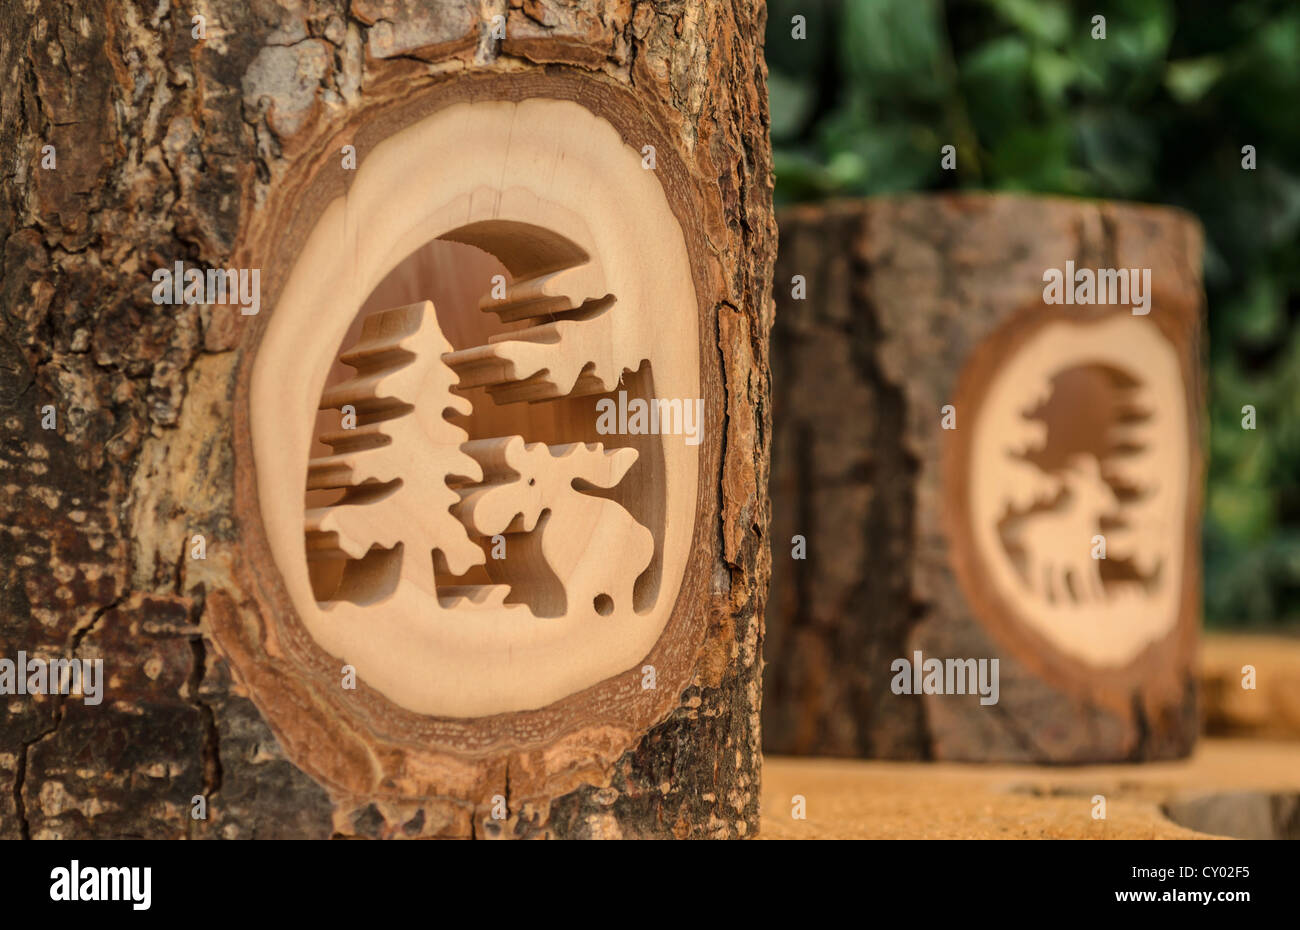 Carvings out of a piece of tree trunk with bark - Stock Image